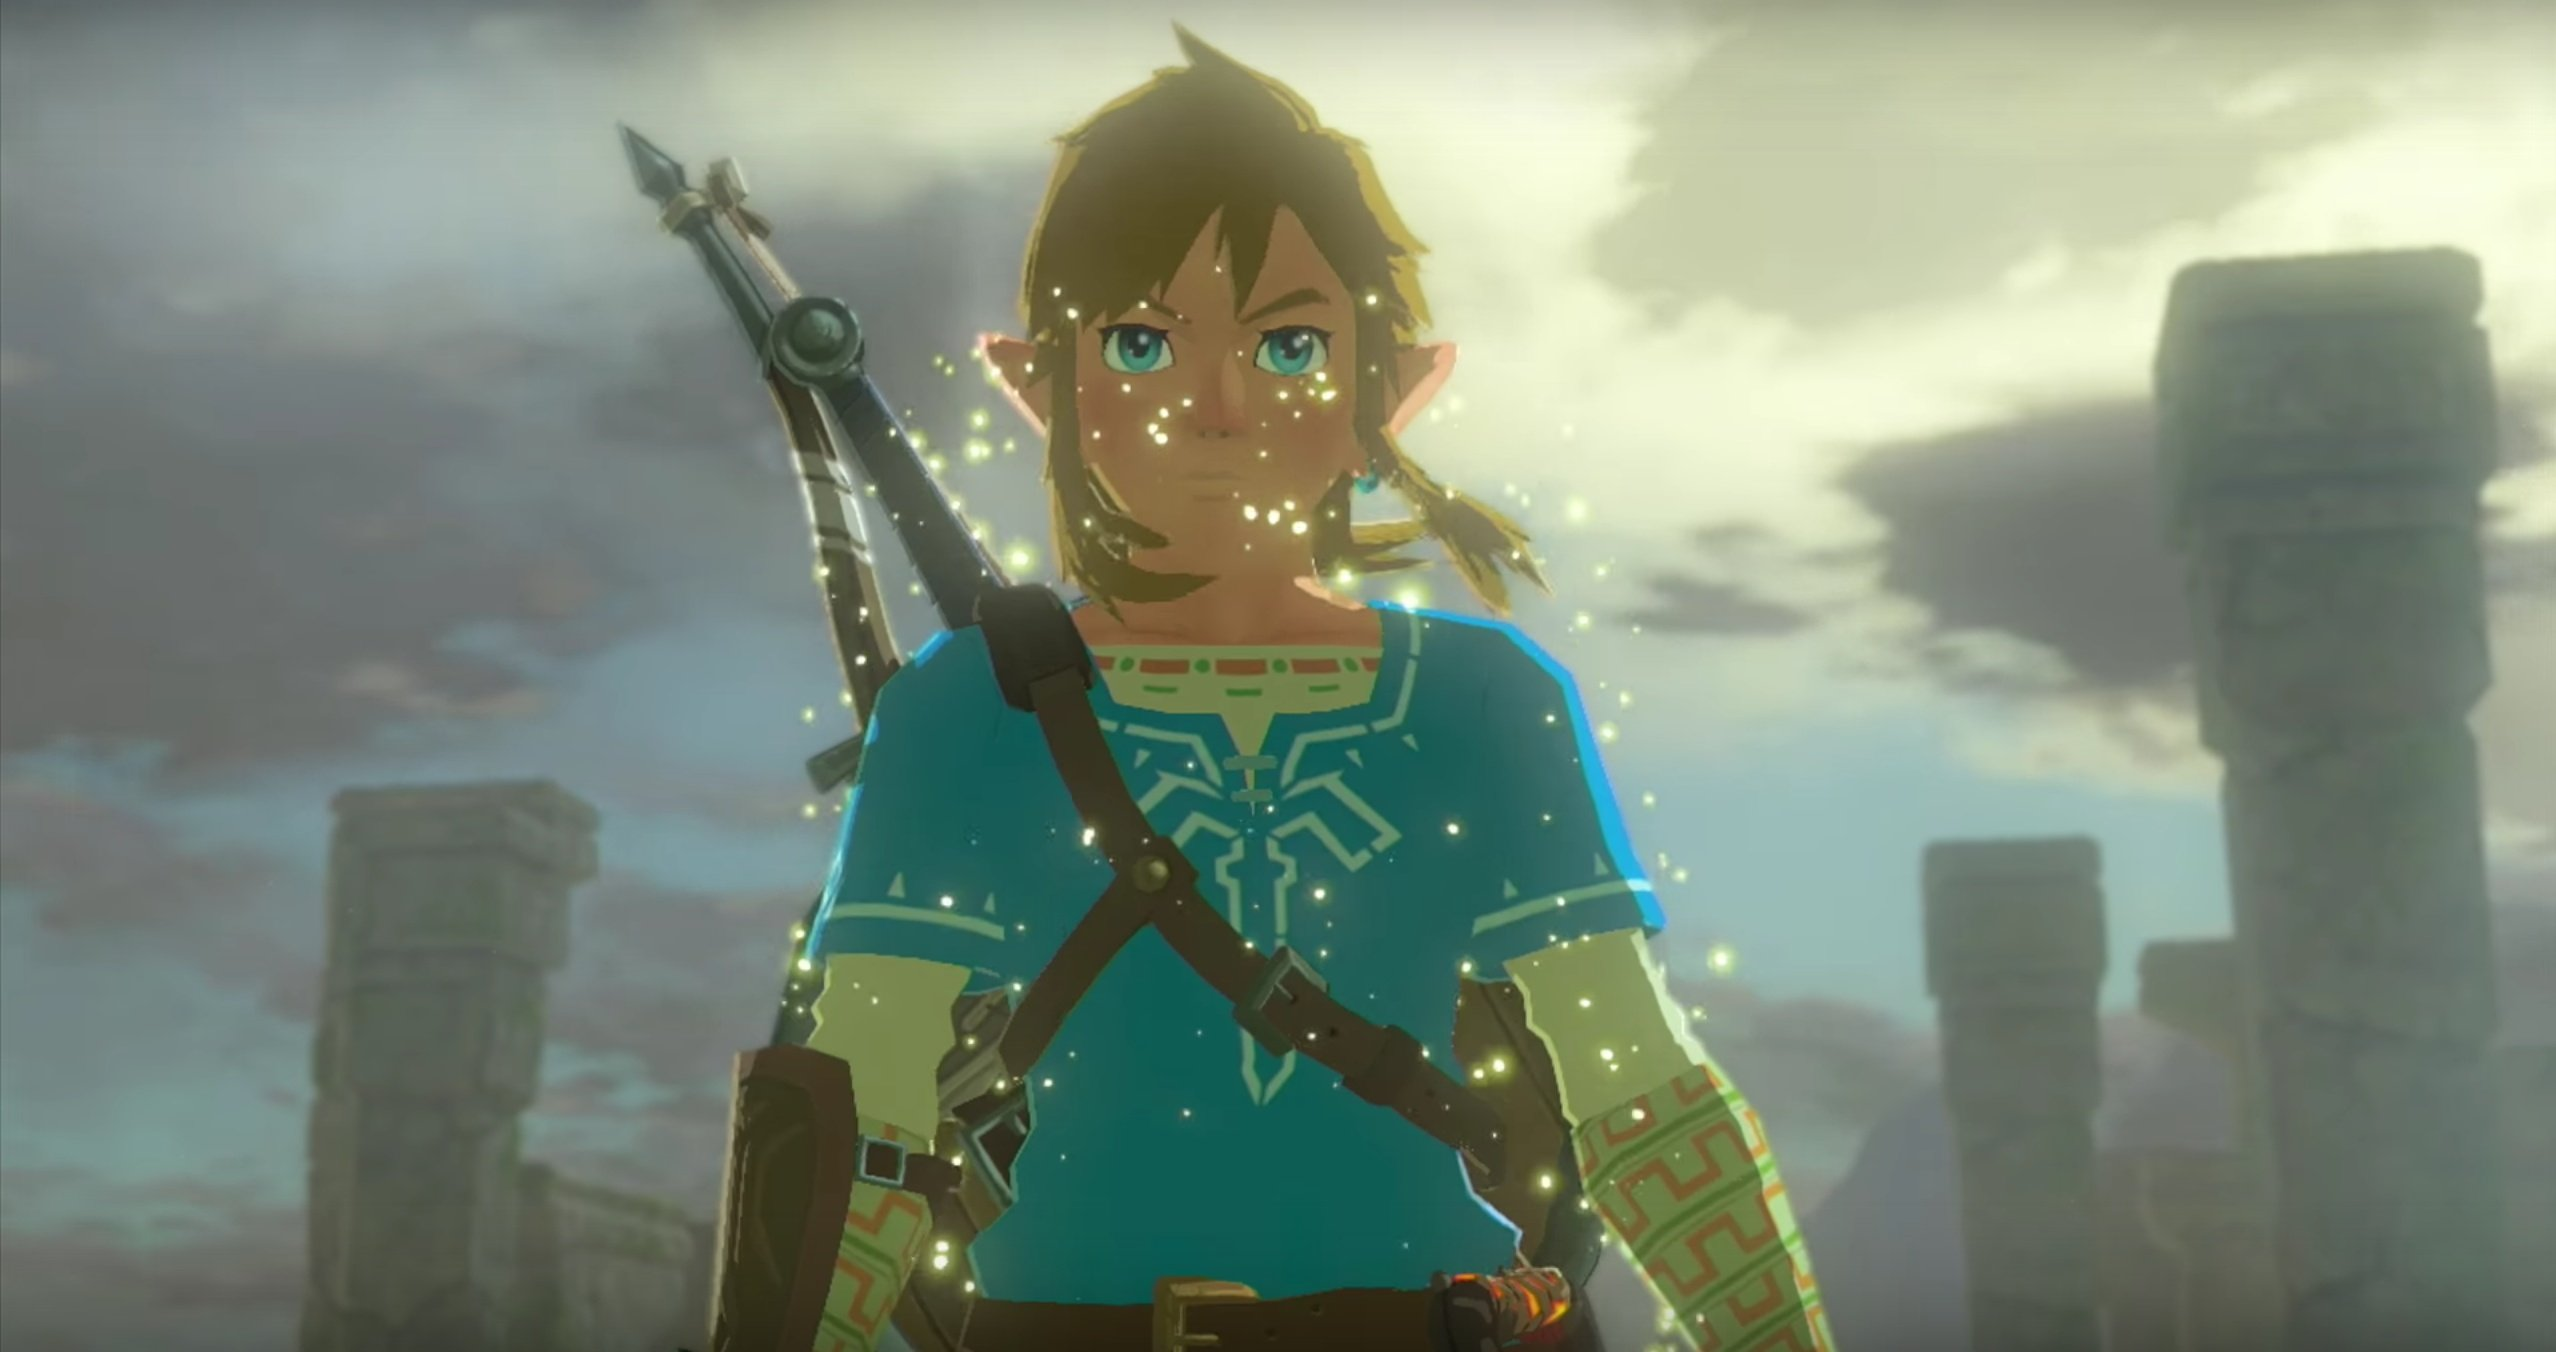 Glitch in The Legend of Zelda: lets you see underwater